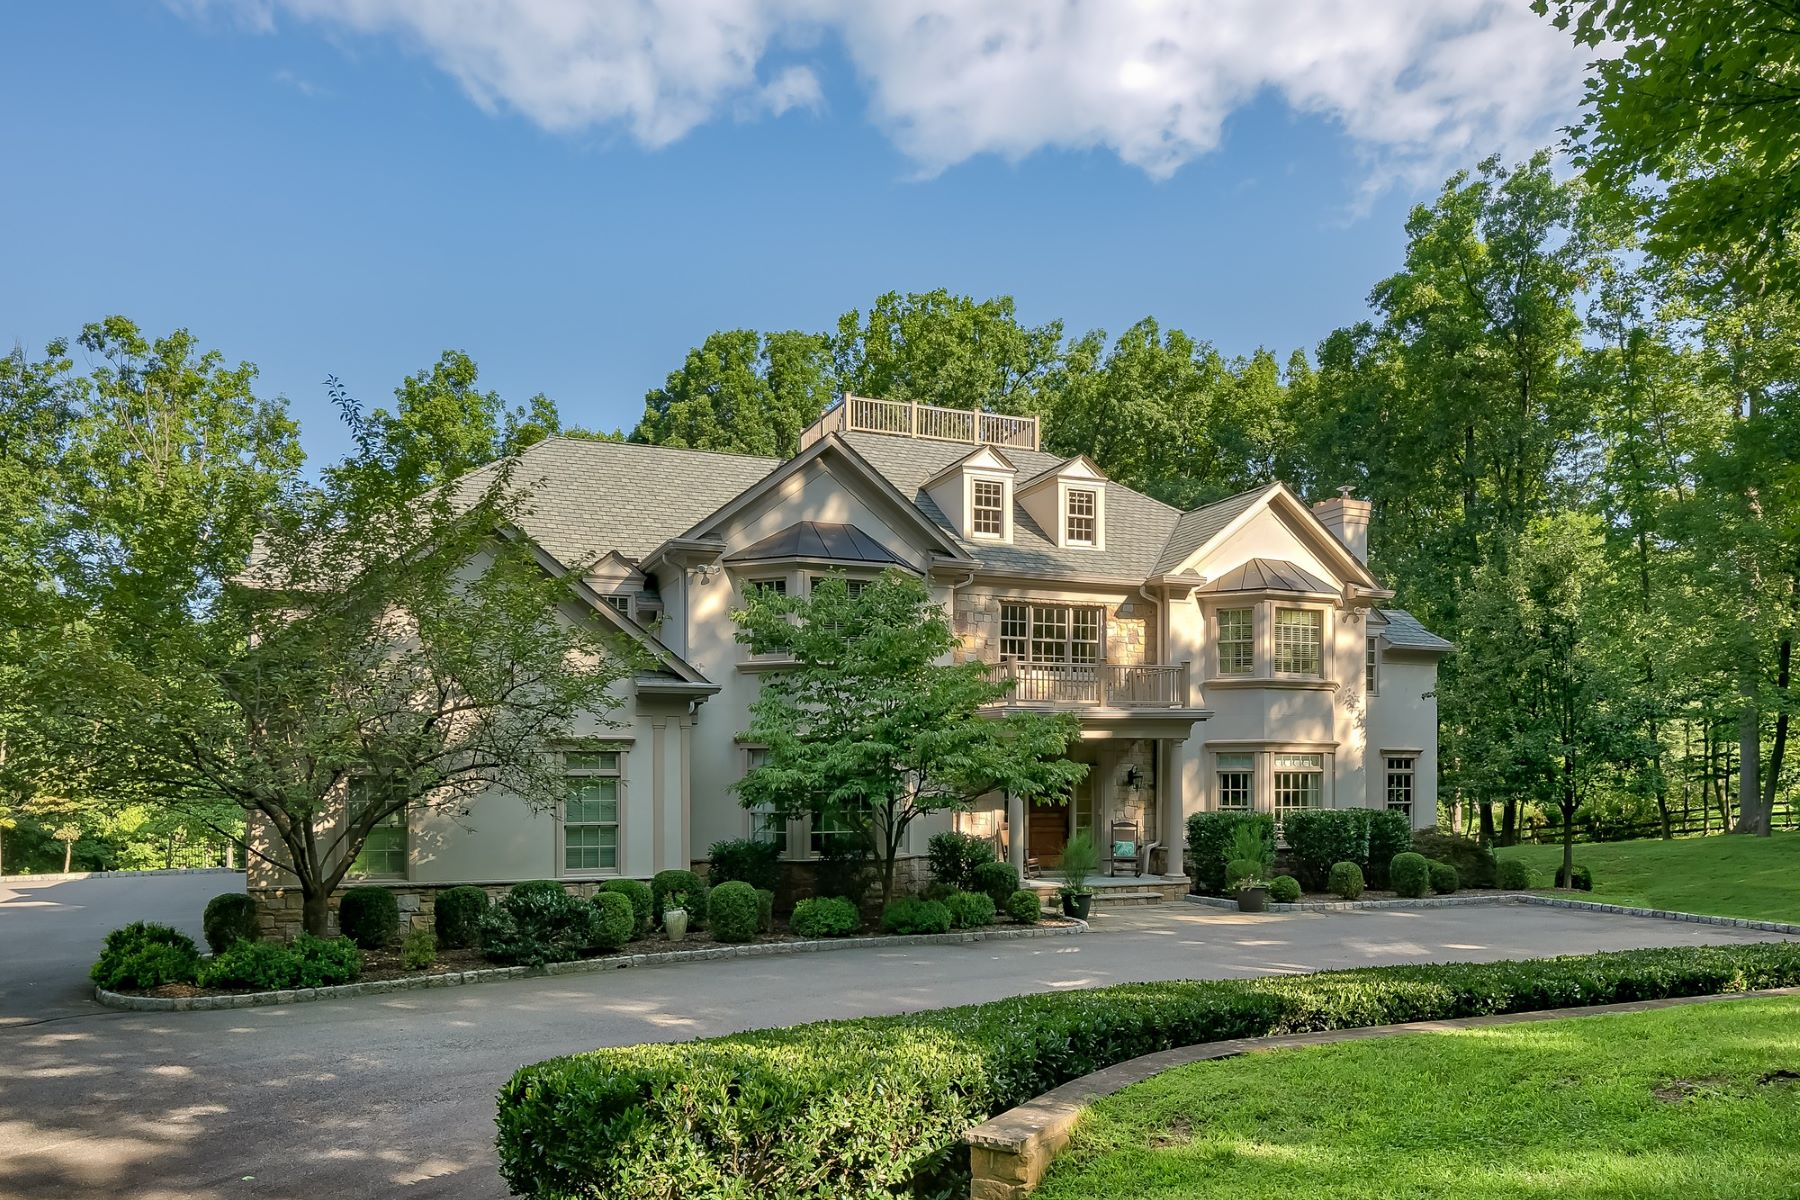 Single Family Homes for Sale at Exceptional Custom Colonial 151 Post Kennel Road, Bernardsville, New Jersey 07924 United States